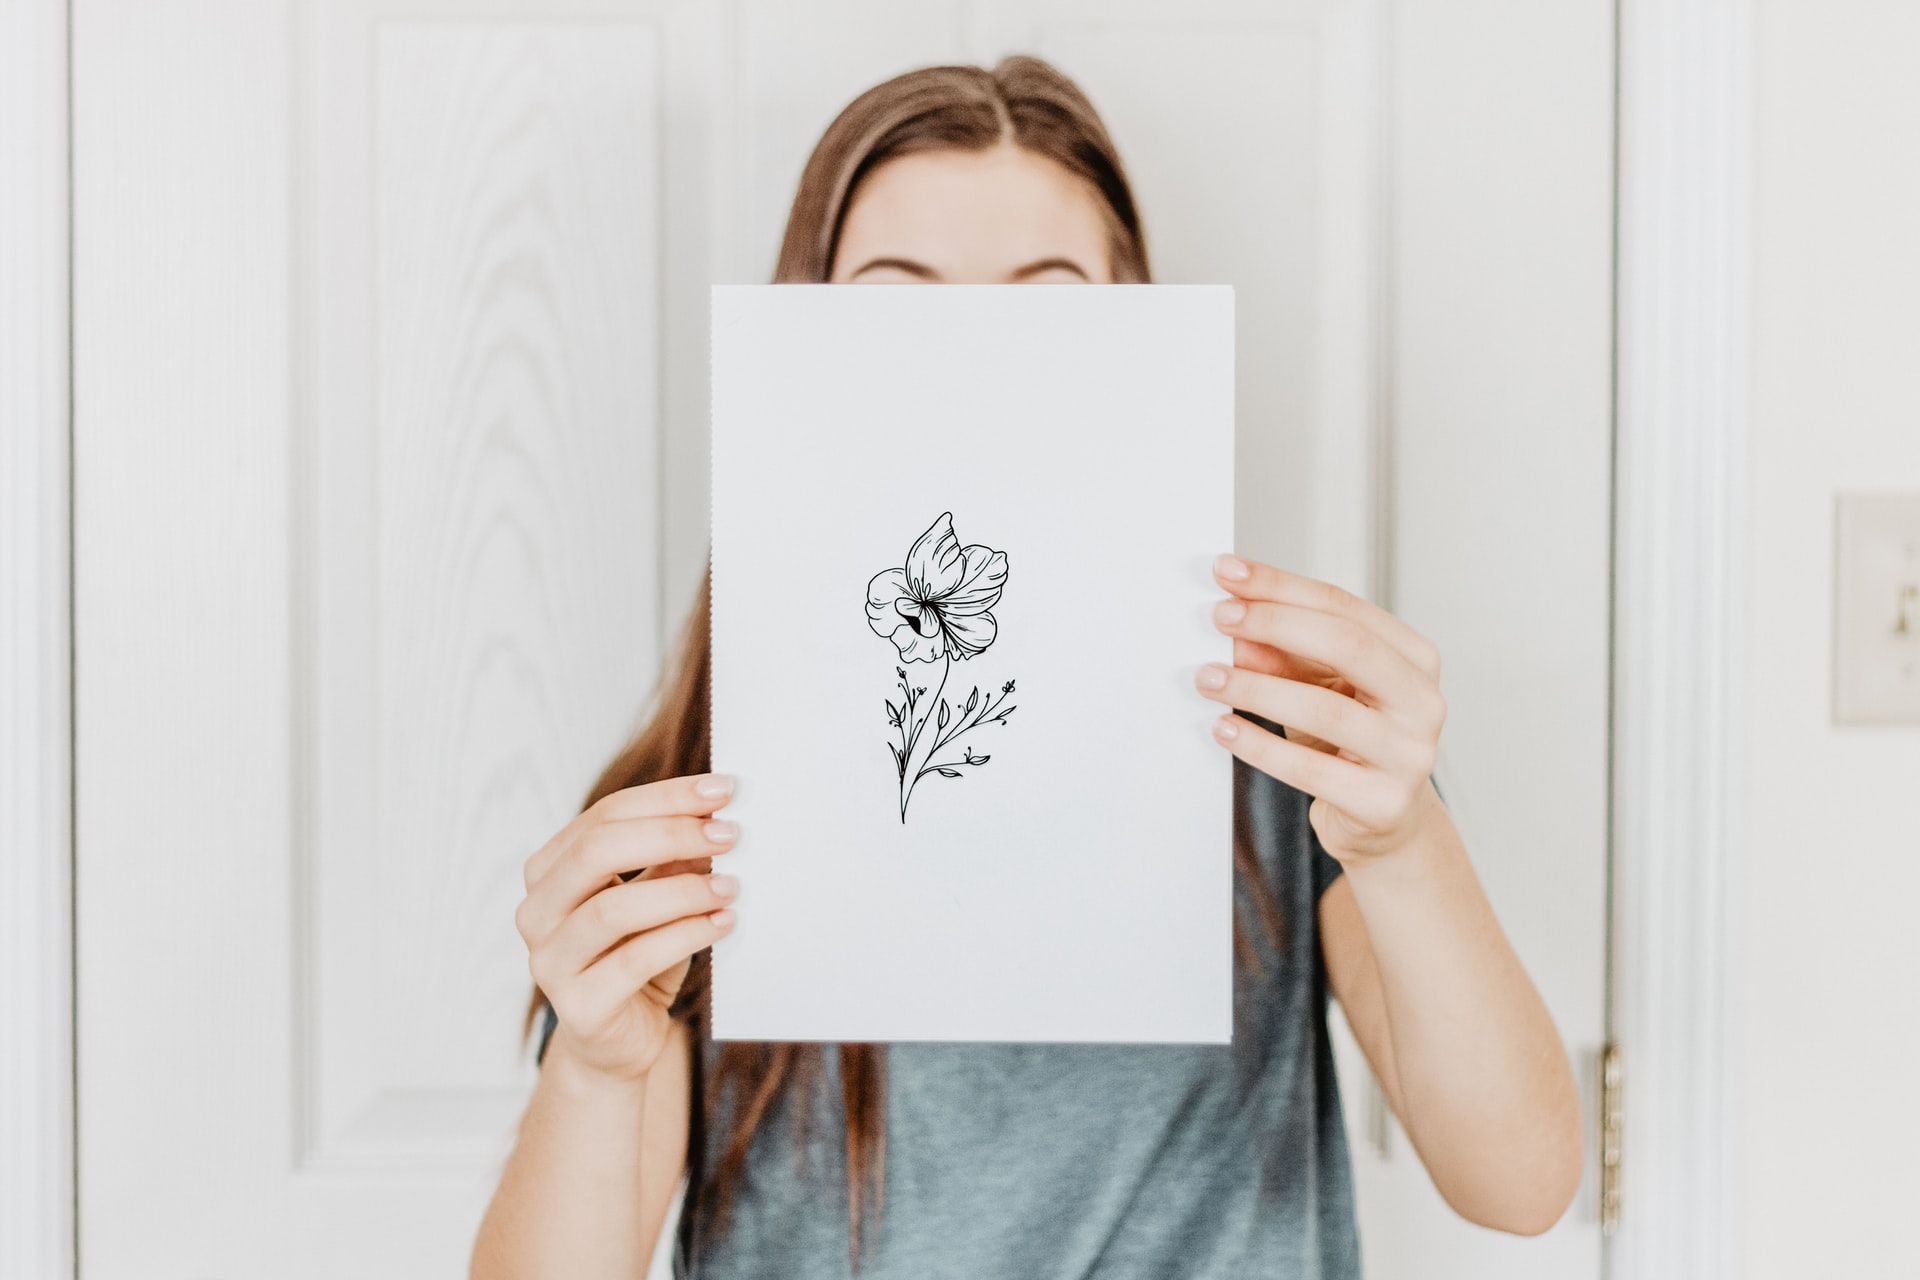 20 Whimsical Drawing Ideas To Inspire Artists 20   Kites and Roses